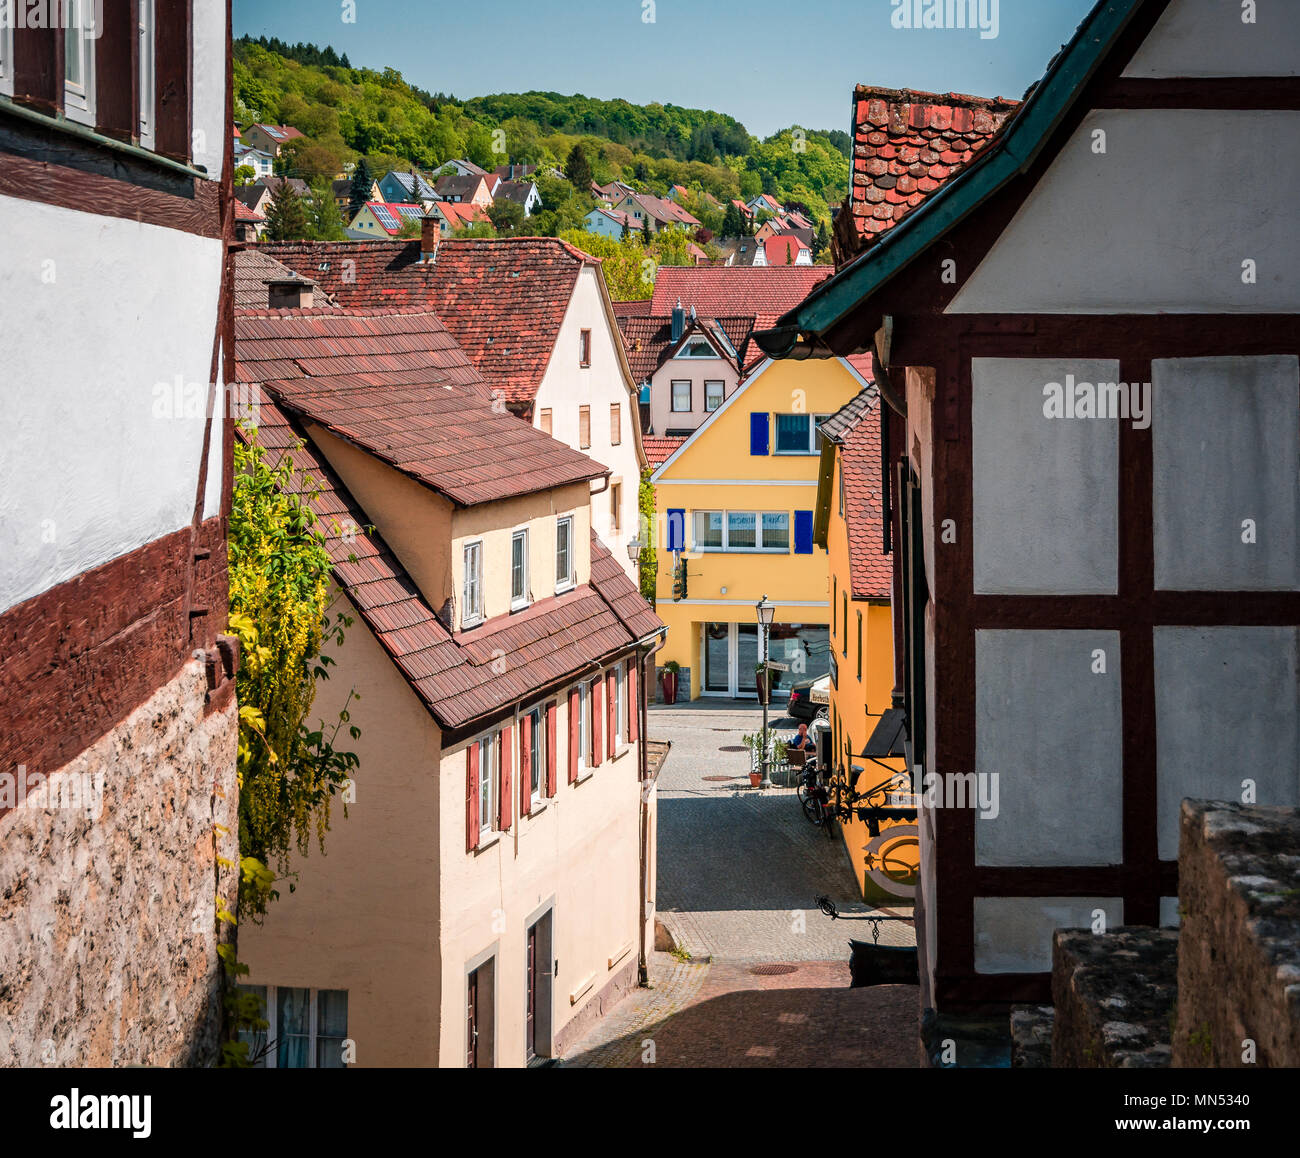 Röttingen - the town of Rottingen in the Tauber Valley along the Romantic Road, Bavaria, Germany - Stock Image